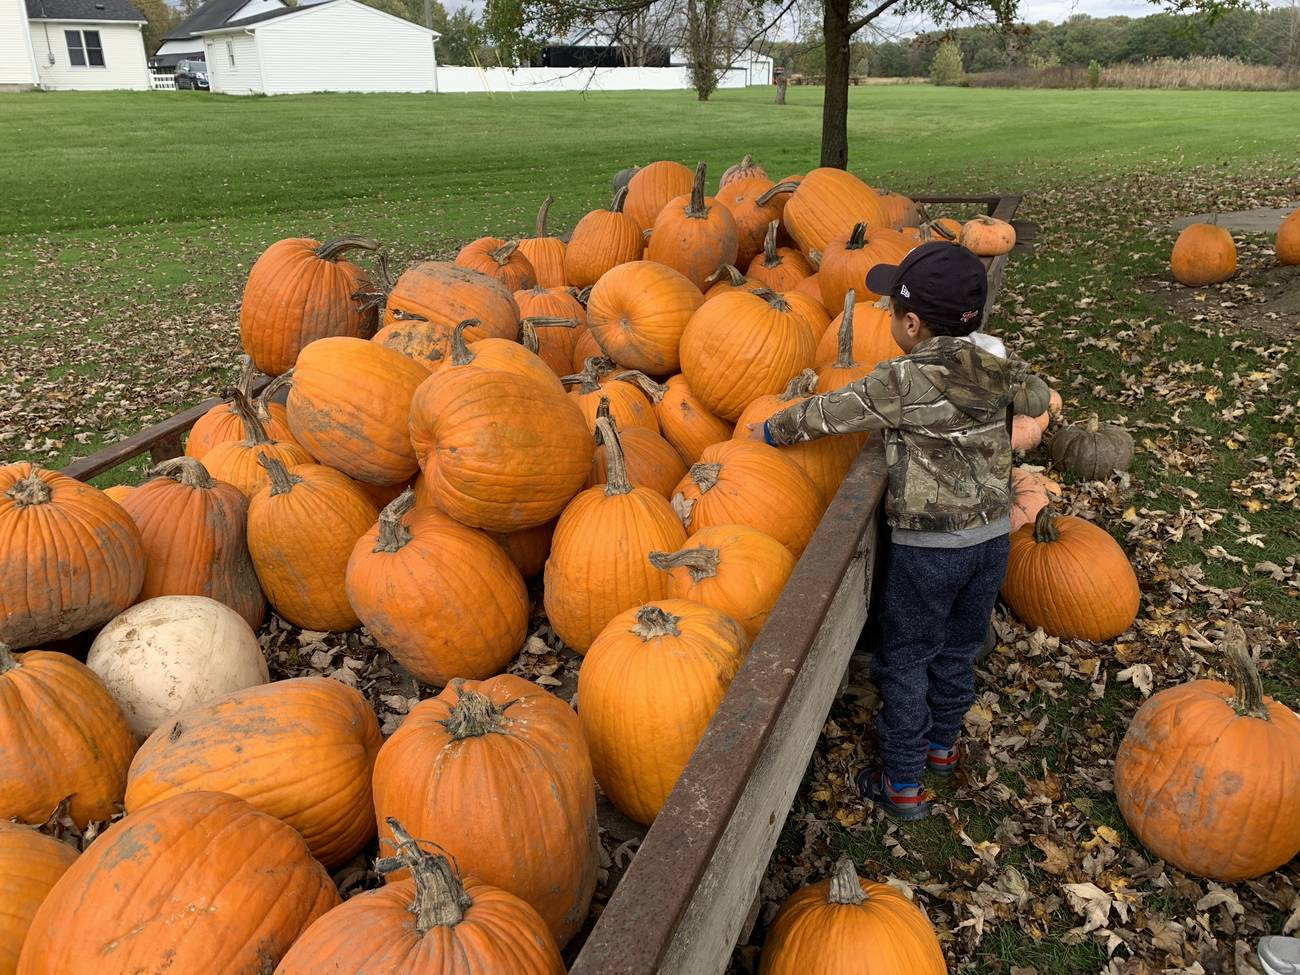 Jacob picks out a pumpkin